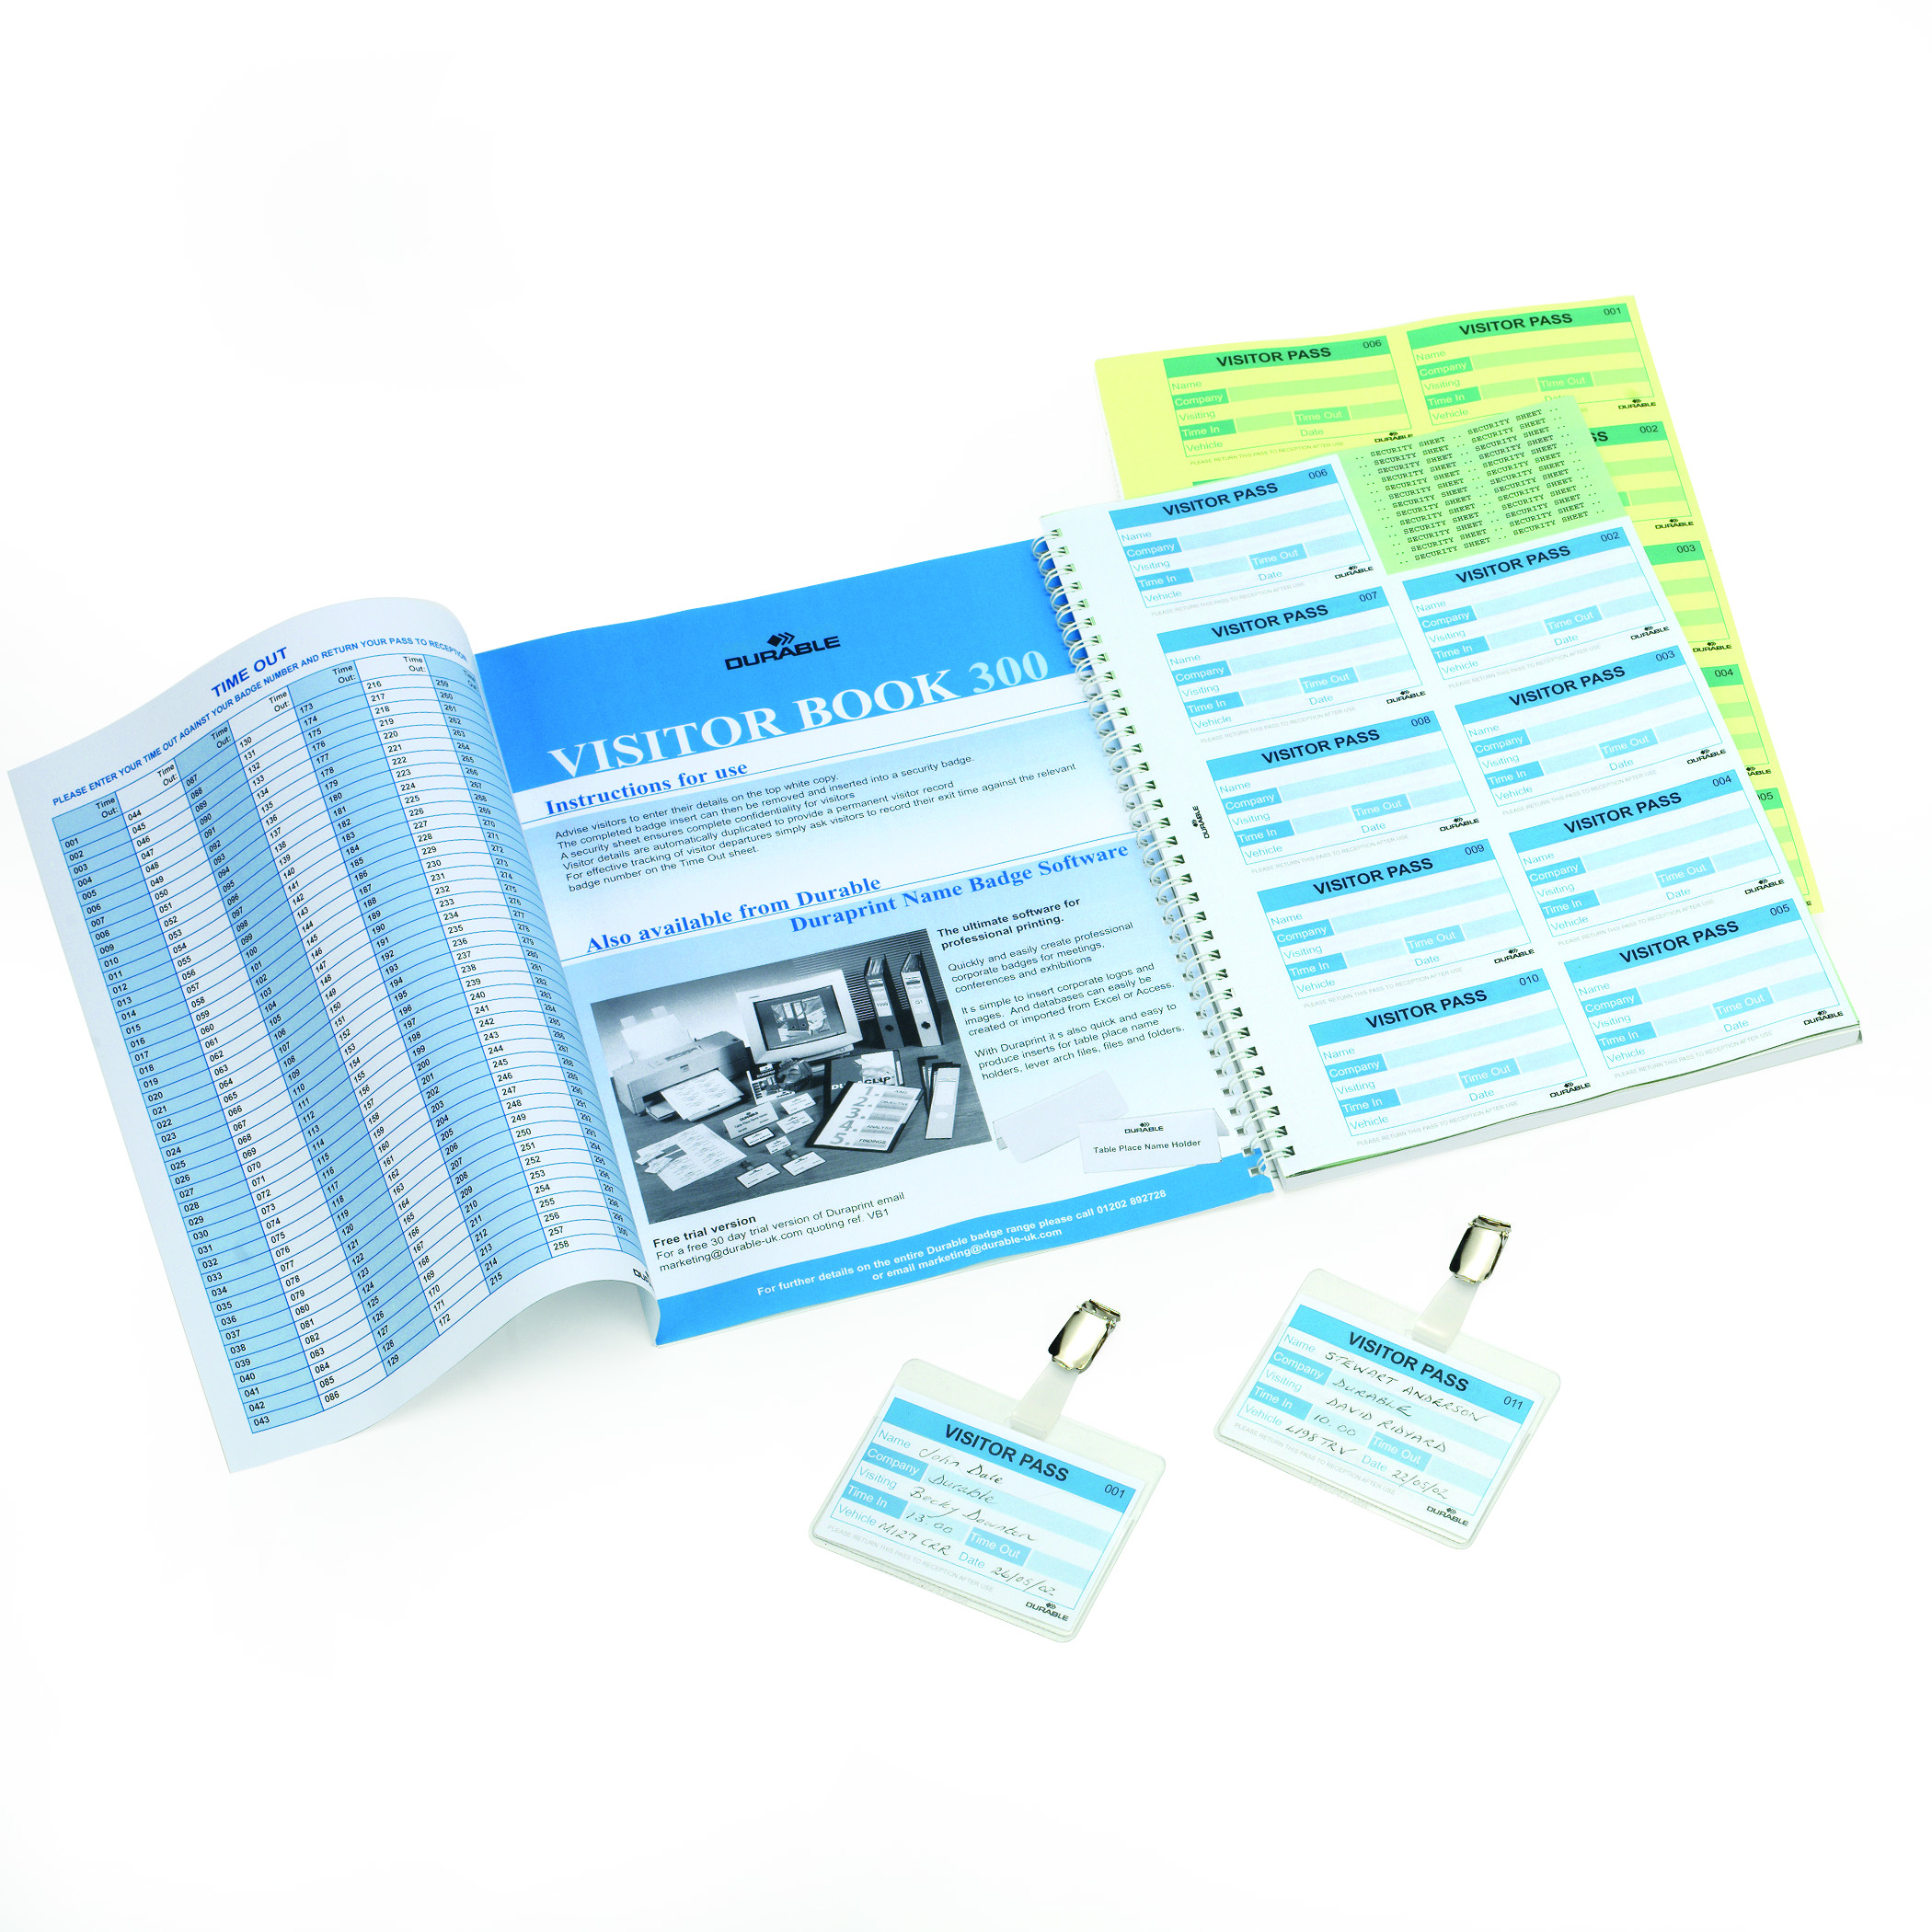 Durable Visitor Book 300 Refills